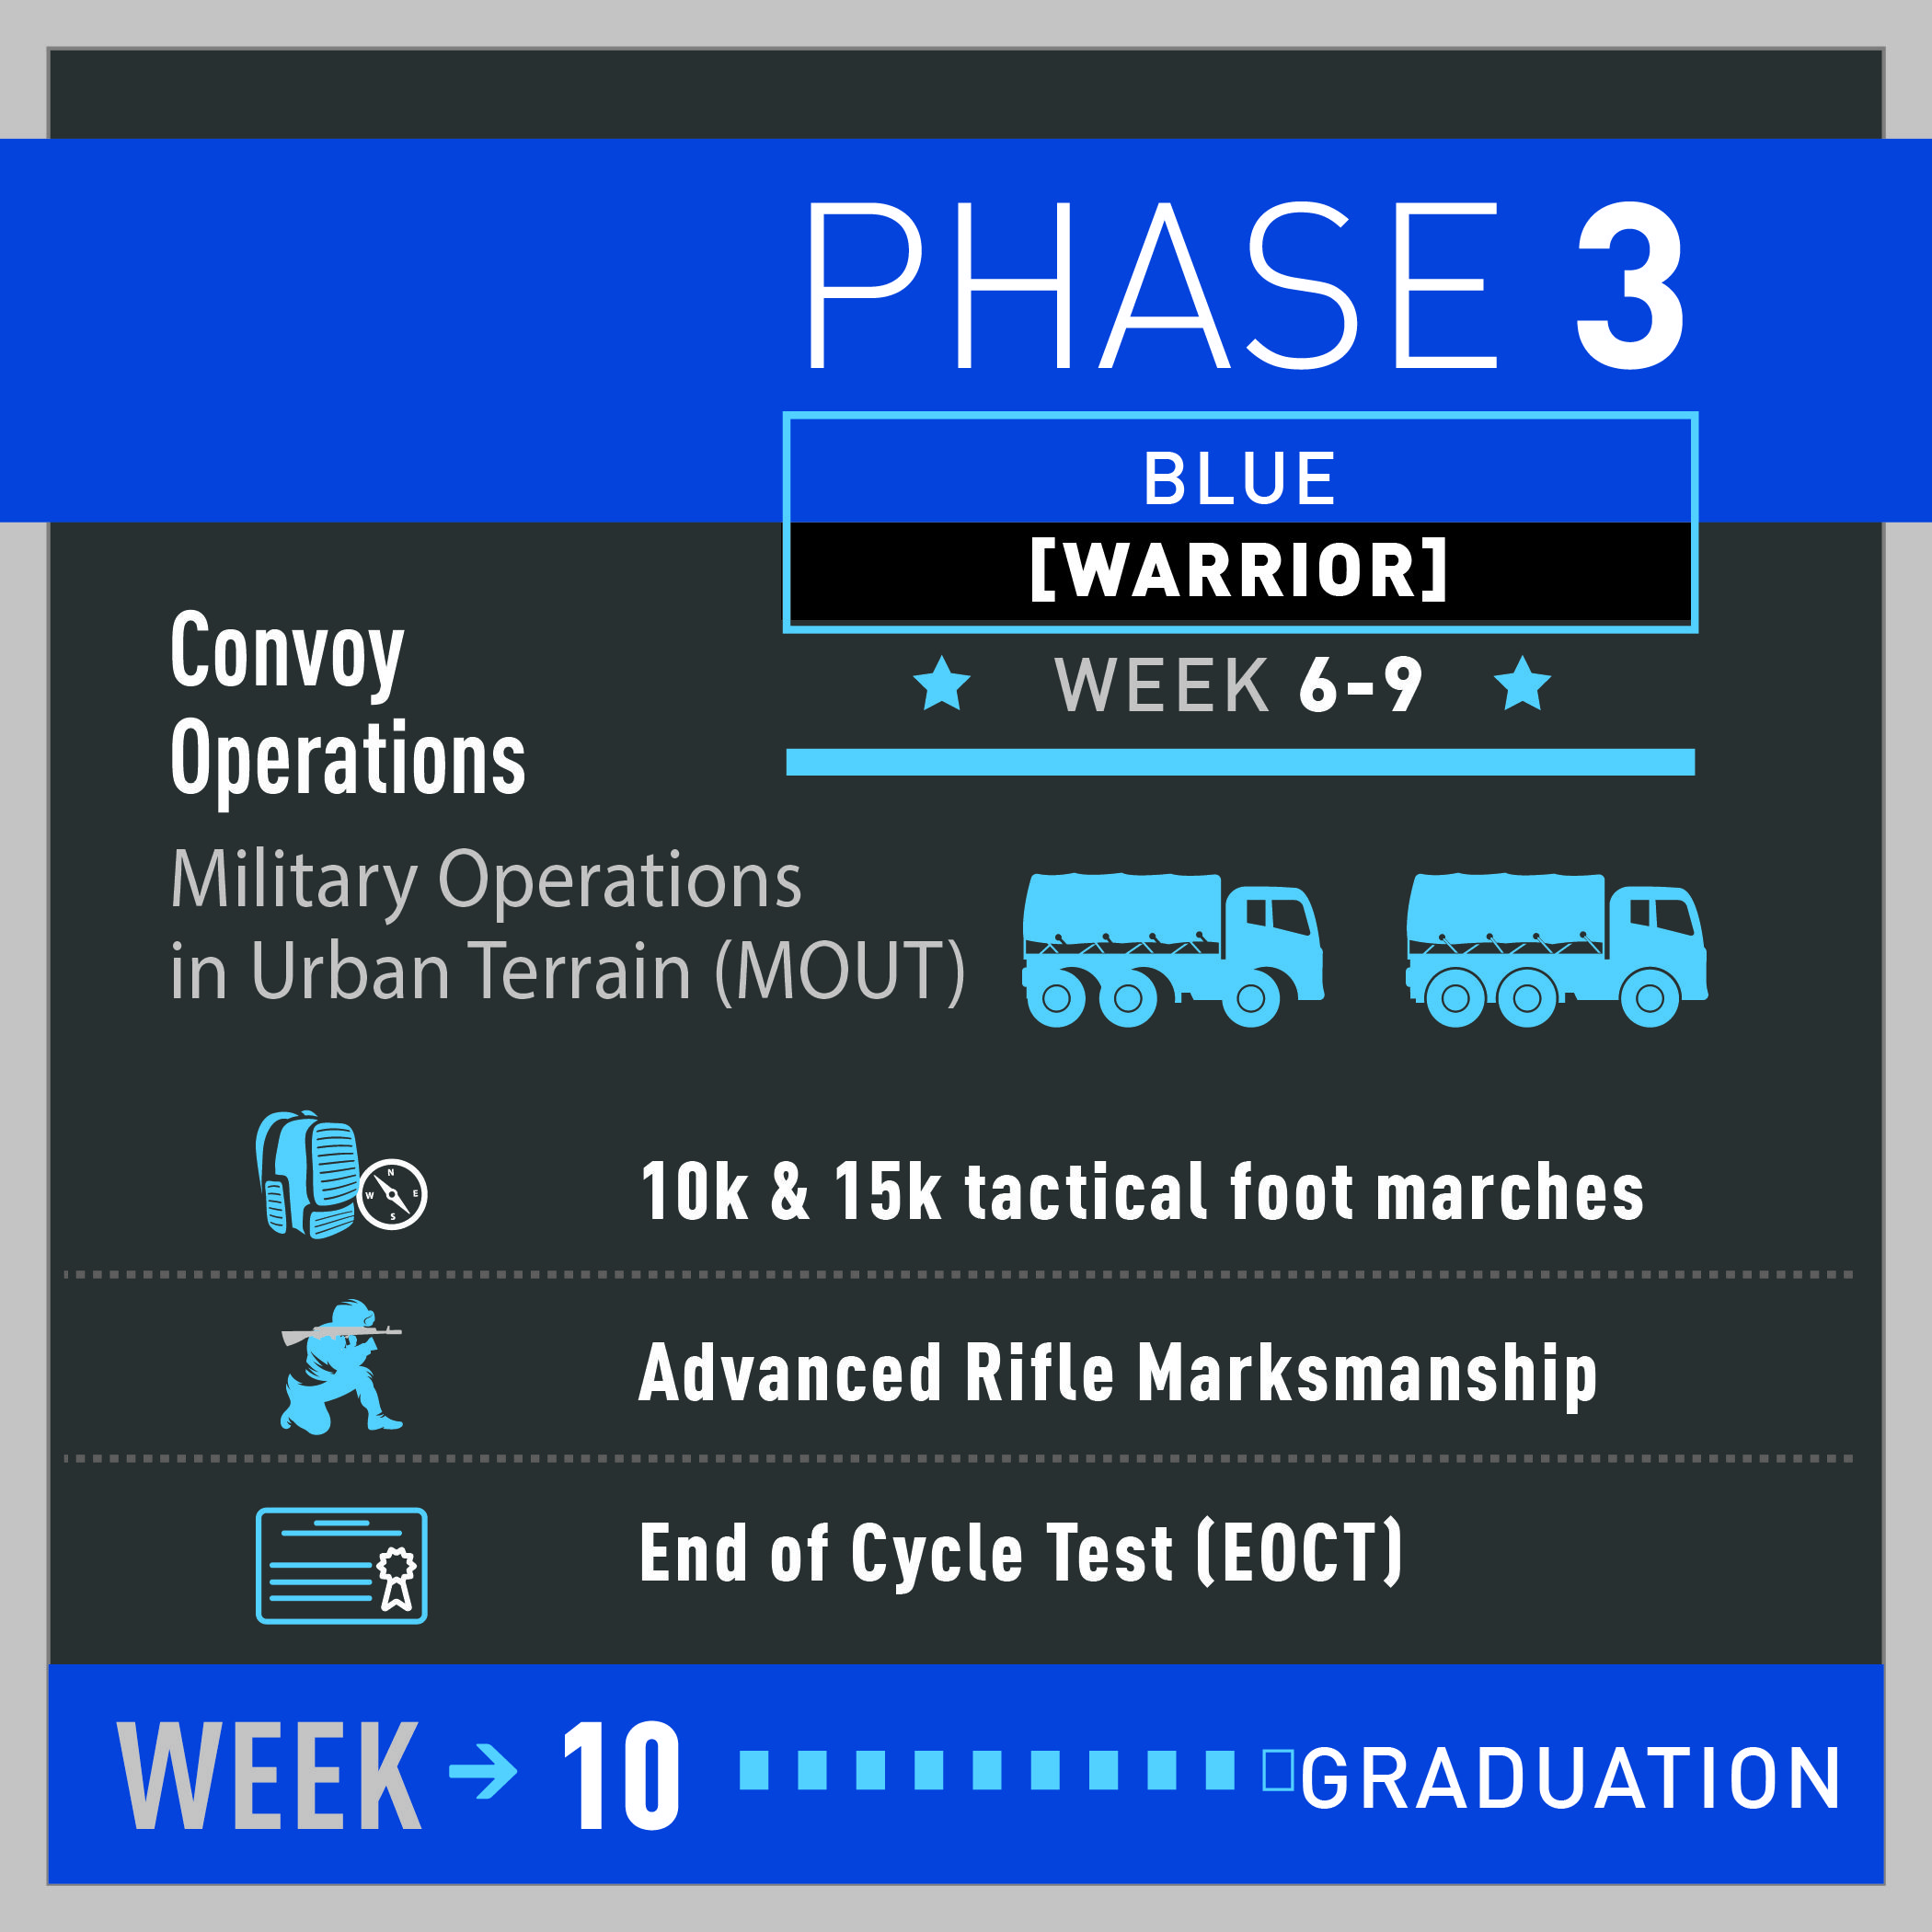 The Blue Phase, Or Warrior Phase, Is Where You Increase